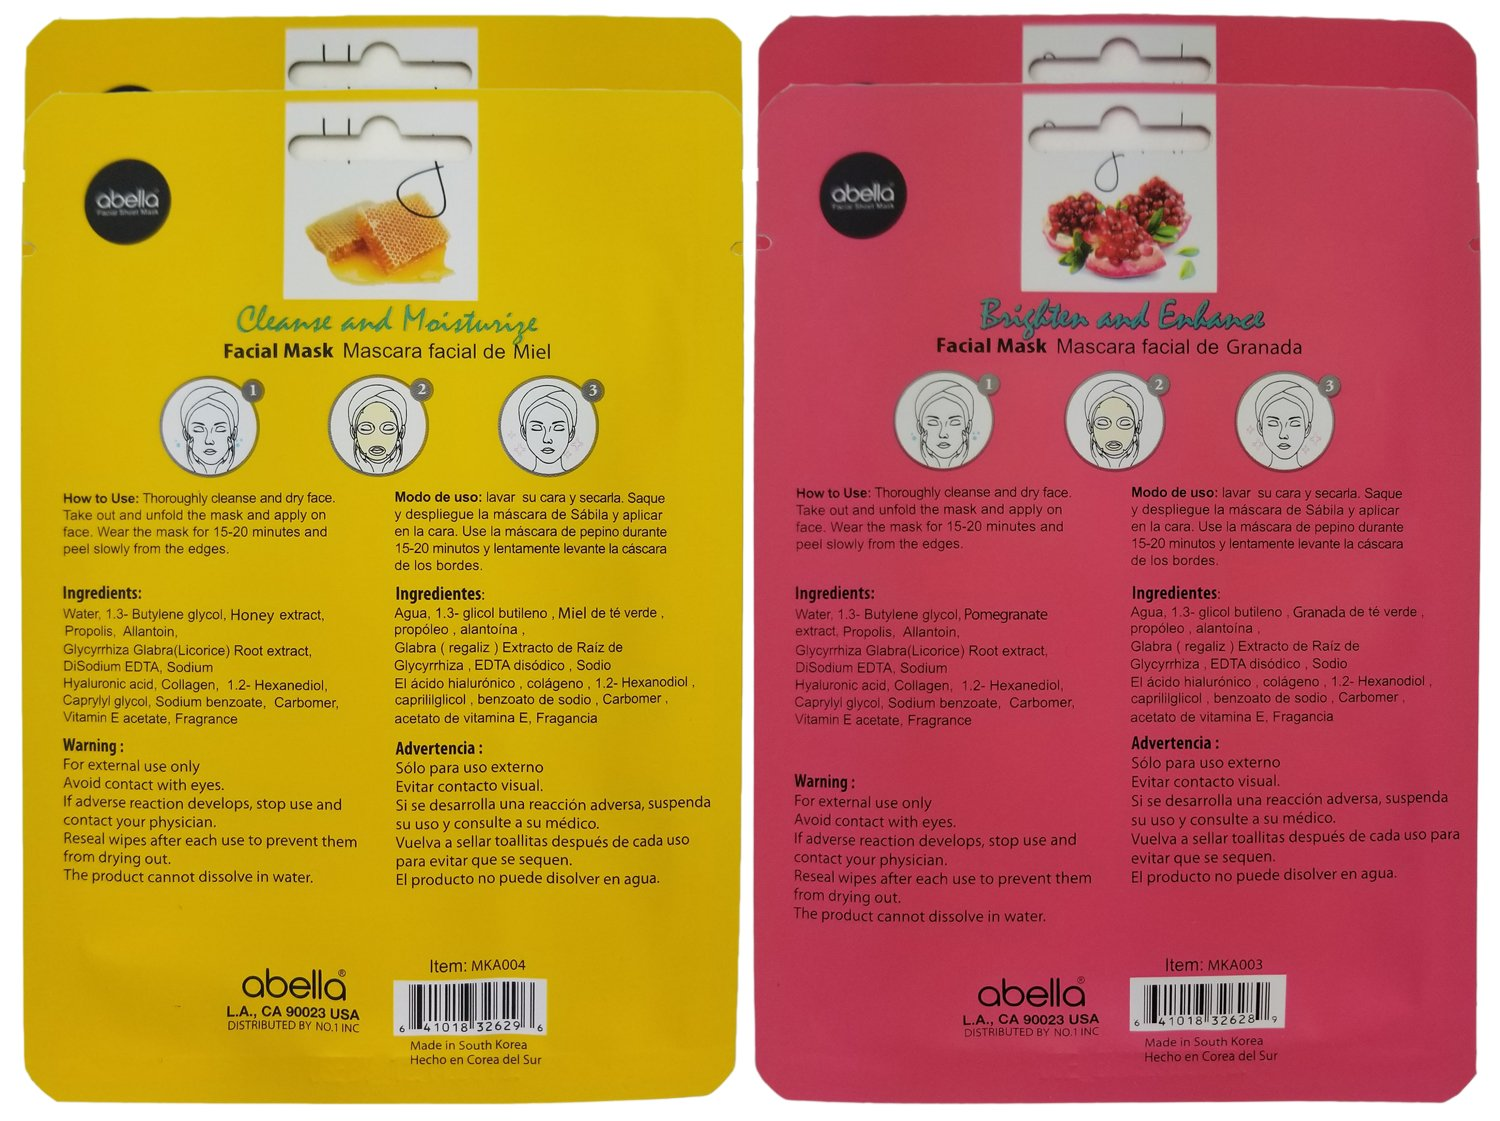 Amazon.com : Abella Cosmetic Essence Facial Mask Paper Sheet Korea Skin Care Moisturizing - 4 Pack, Aloe & Avocado : Beauty